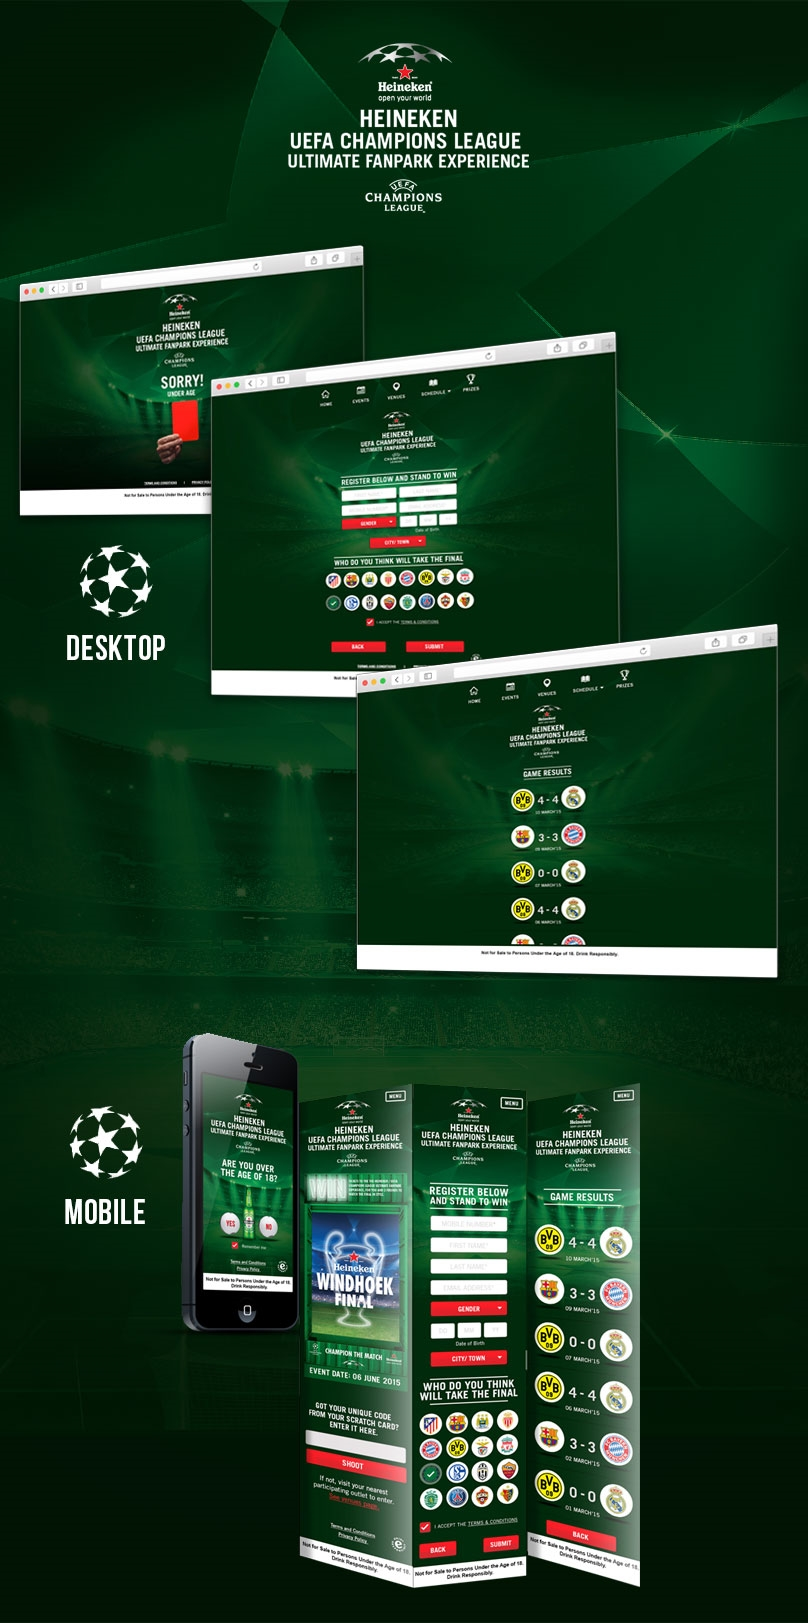 mobile-design-development-heineken-2015